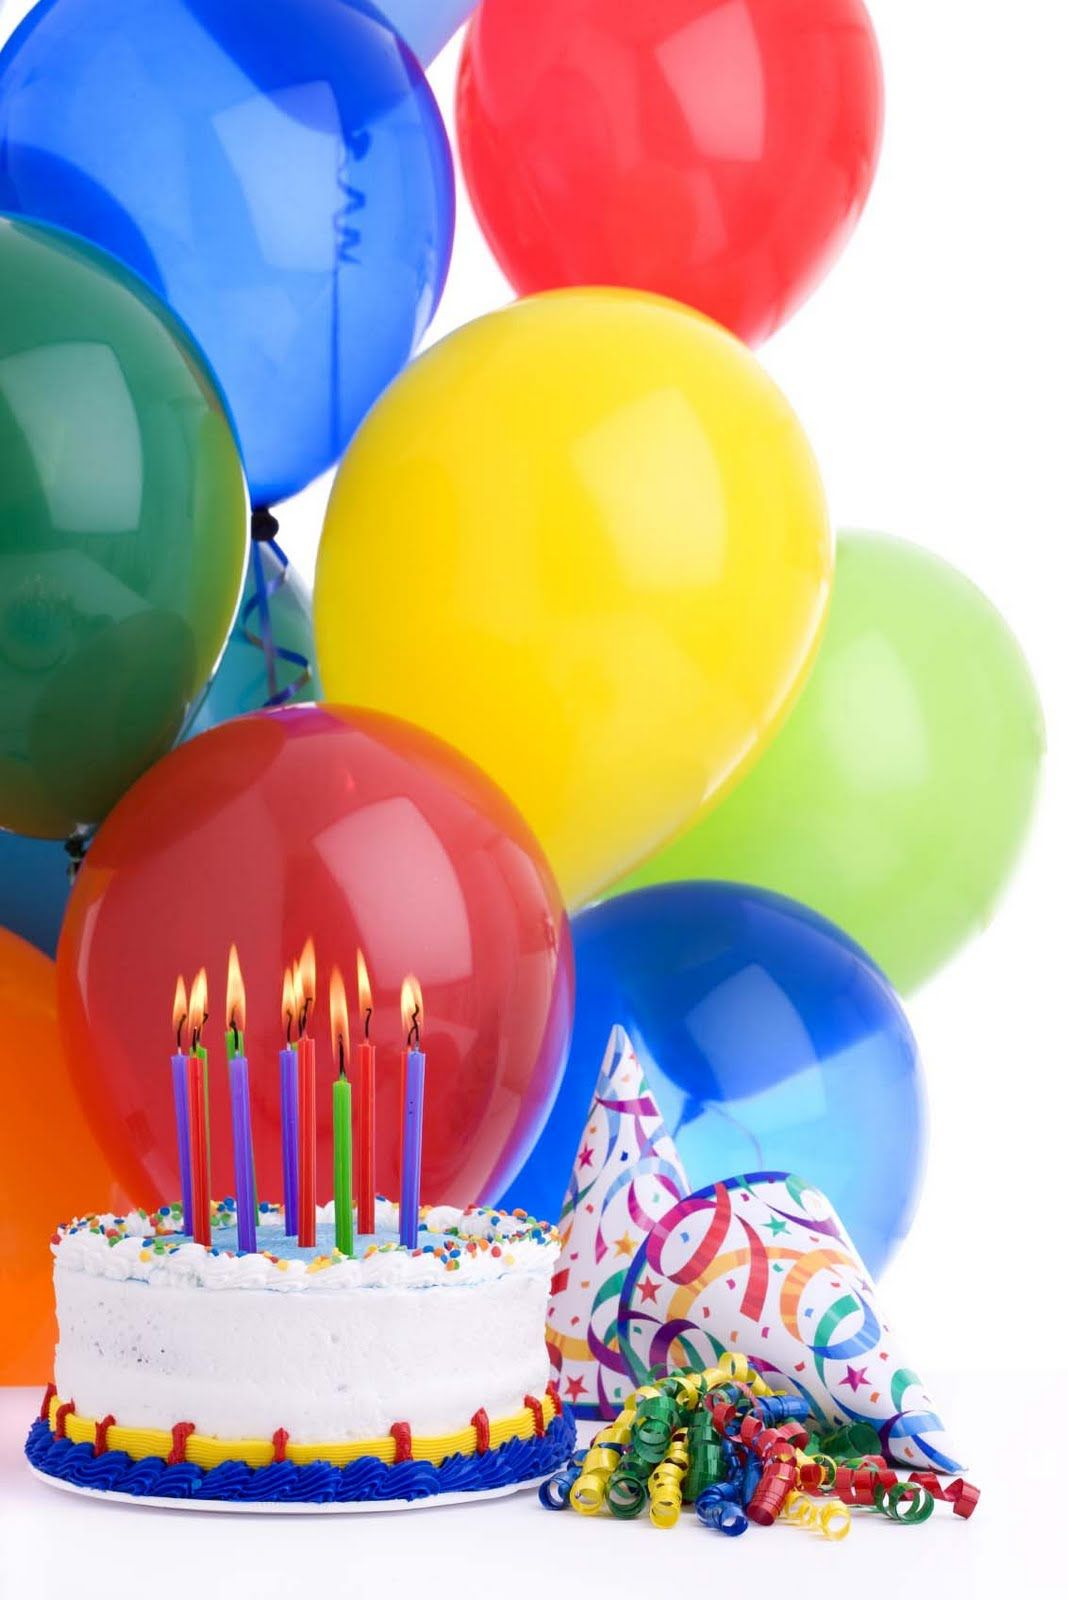 Birthday cake and balloons balloons pinterest birthday birthday cake and balloons dhlflorist Choice Image